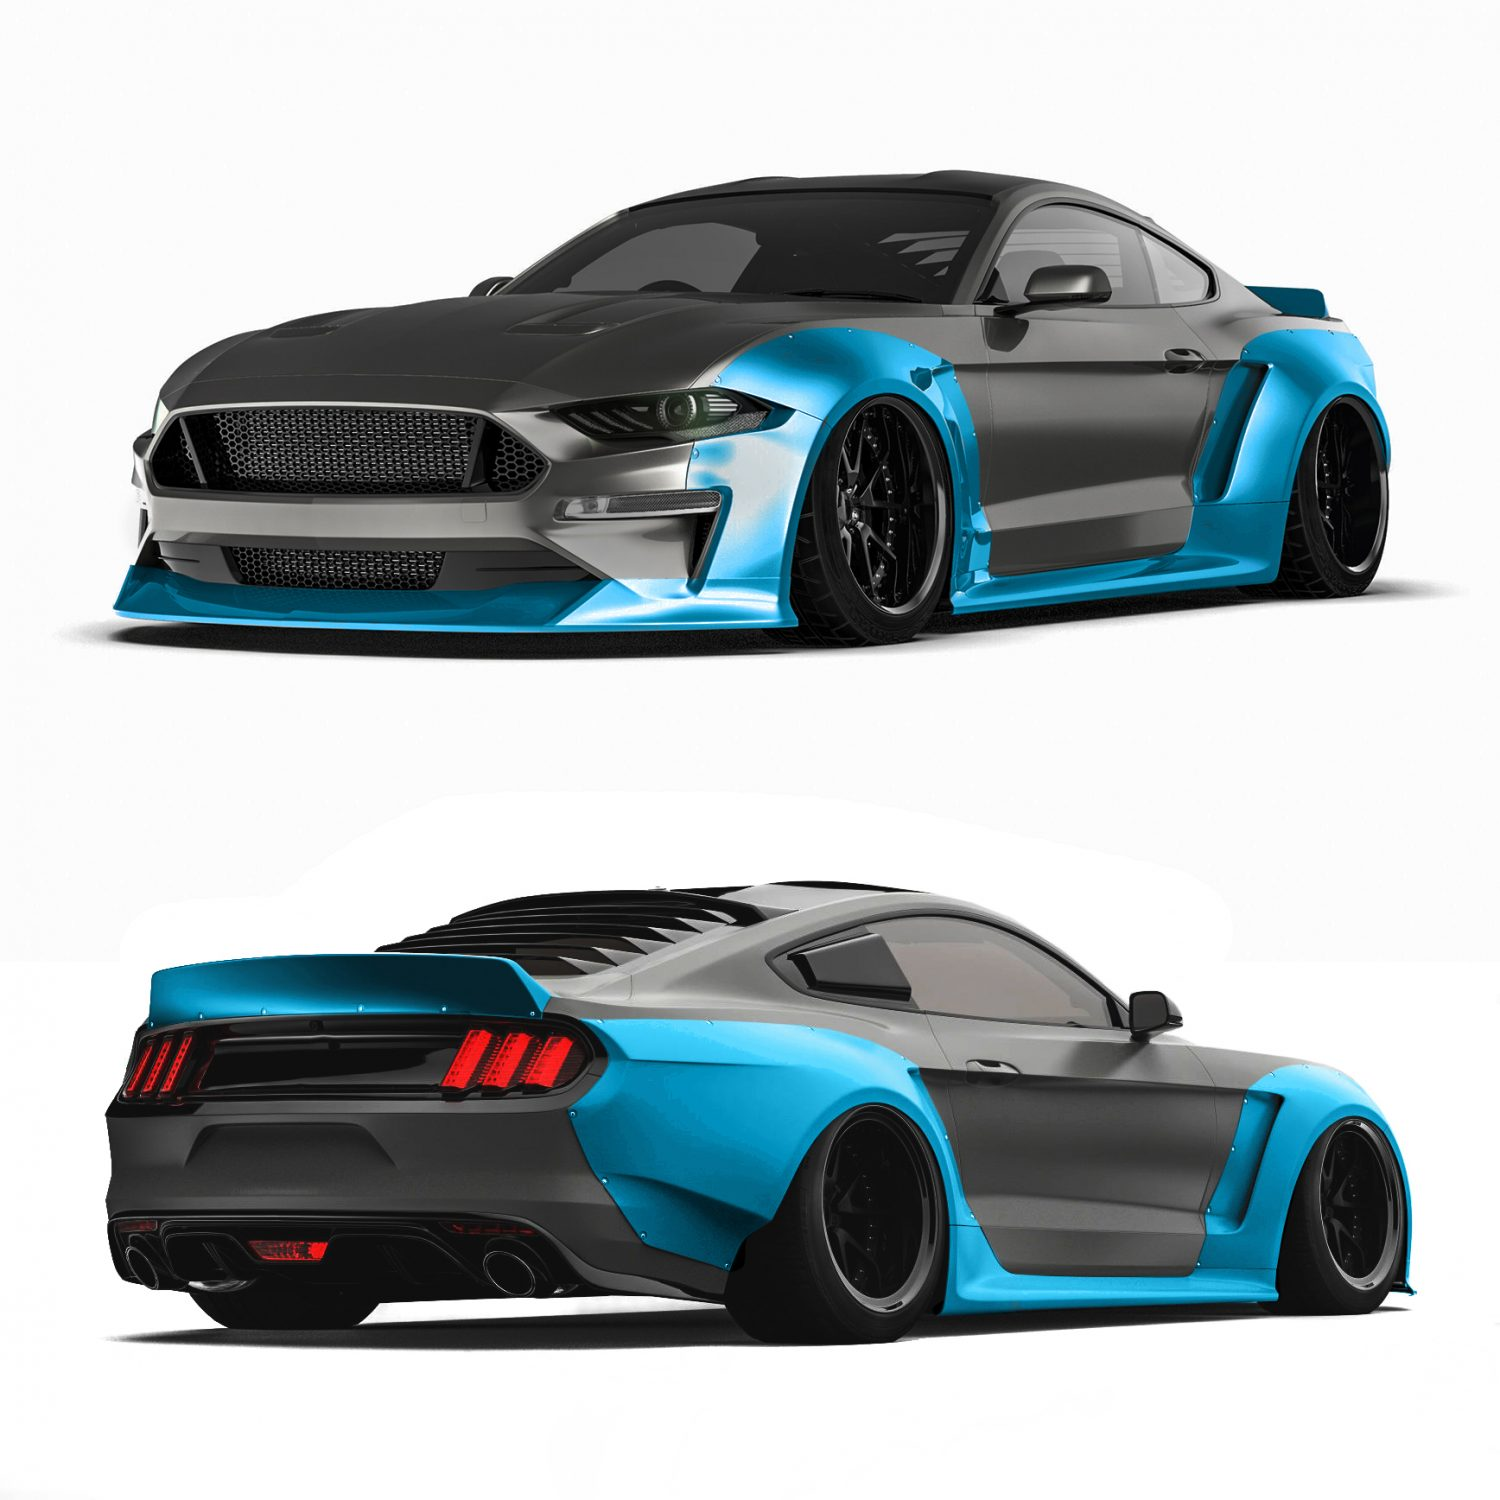 2018: 2018 Ford Mustang Widebody Kit, Fits 2018+ Ford Mustang GT